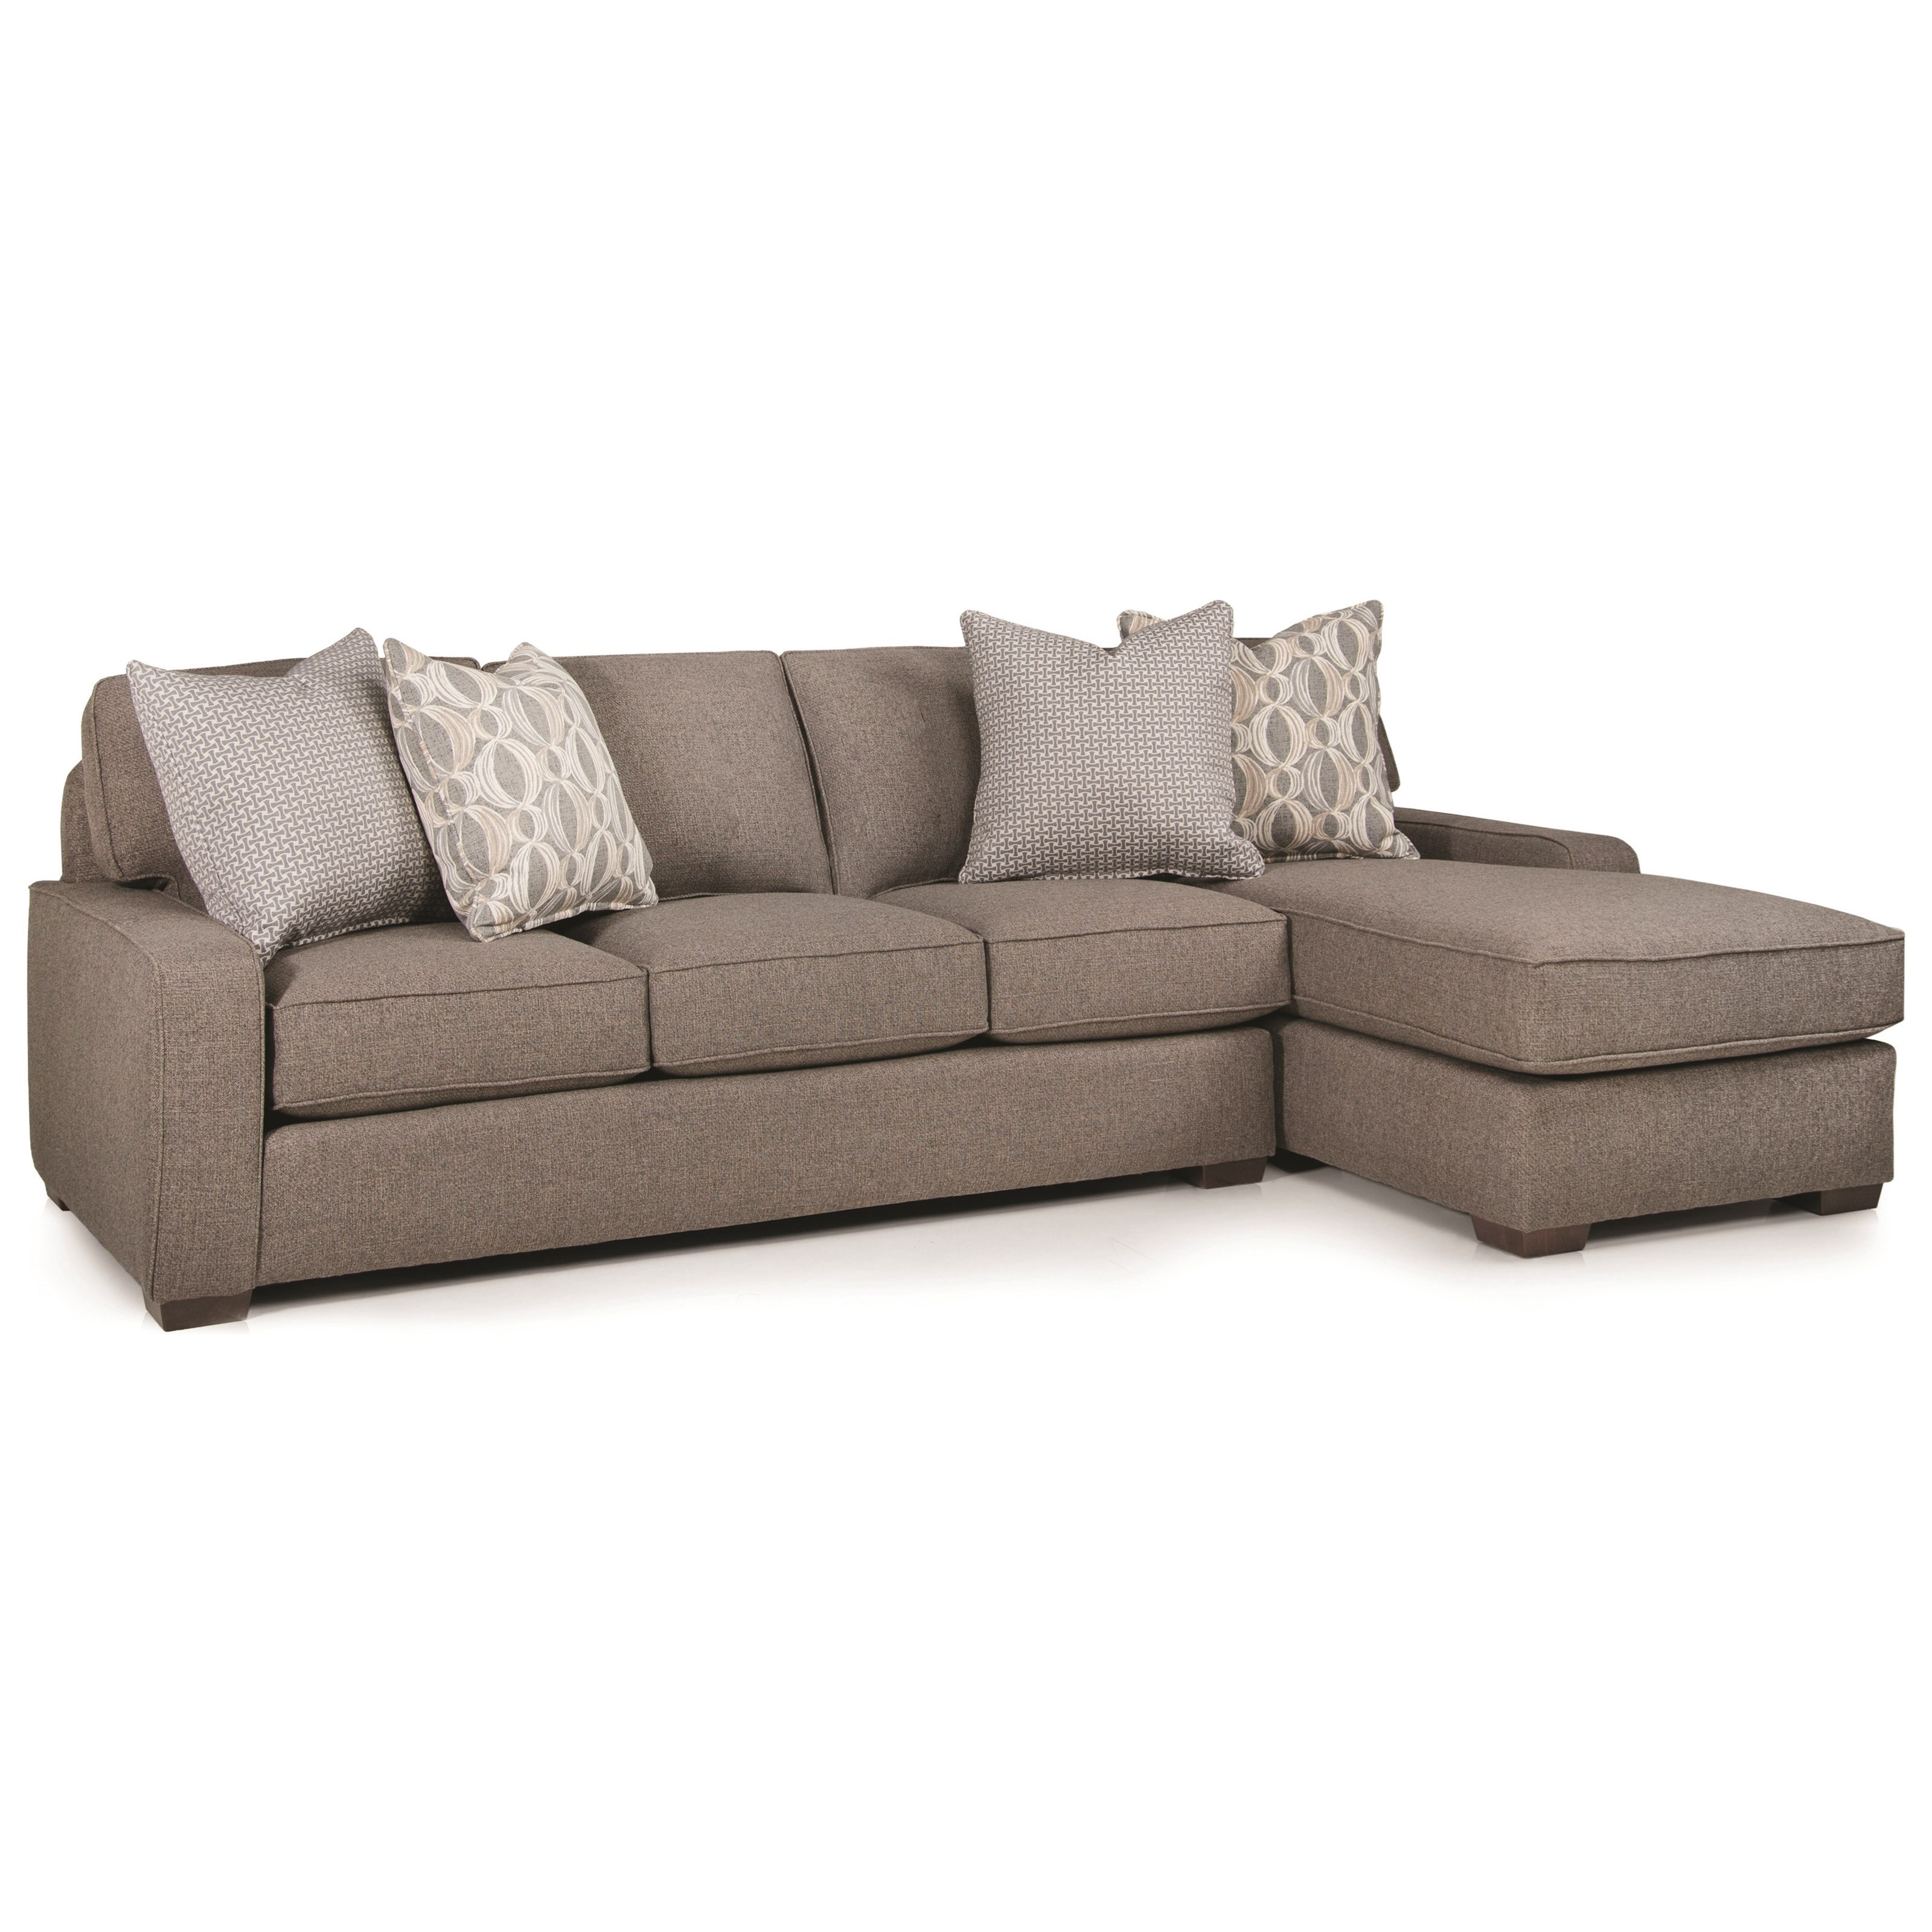 Smith Brothers Build Your Own (8000 Series) Casual 4 Seat Sectional With  Right Chaise